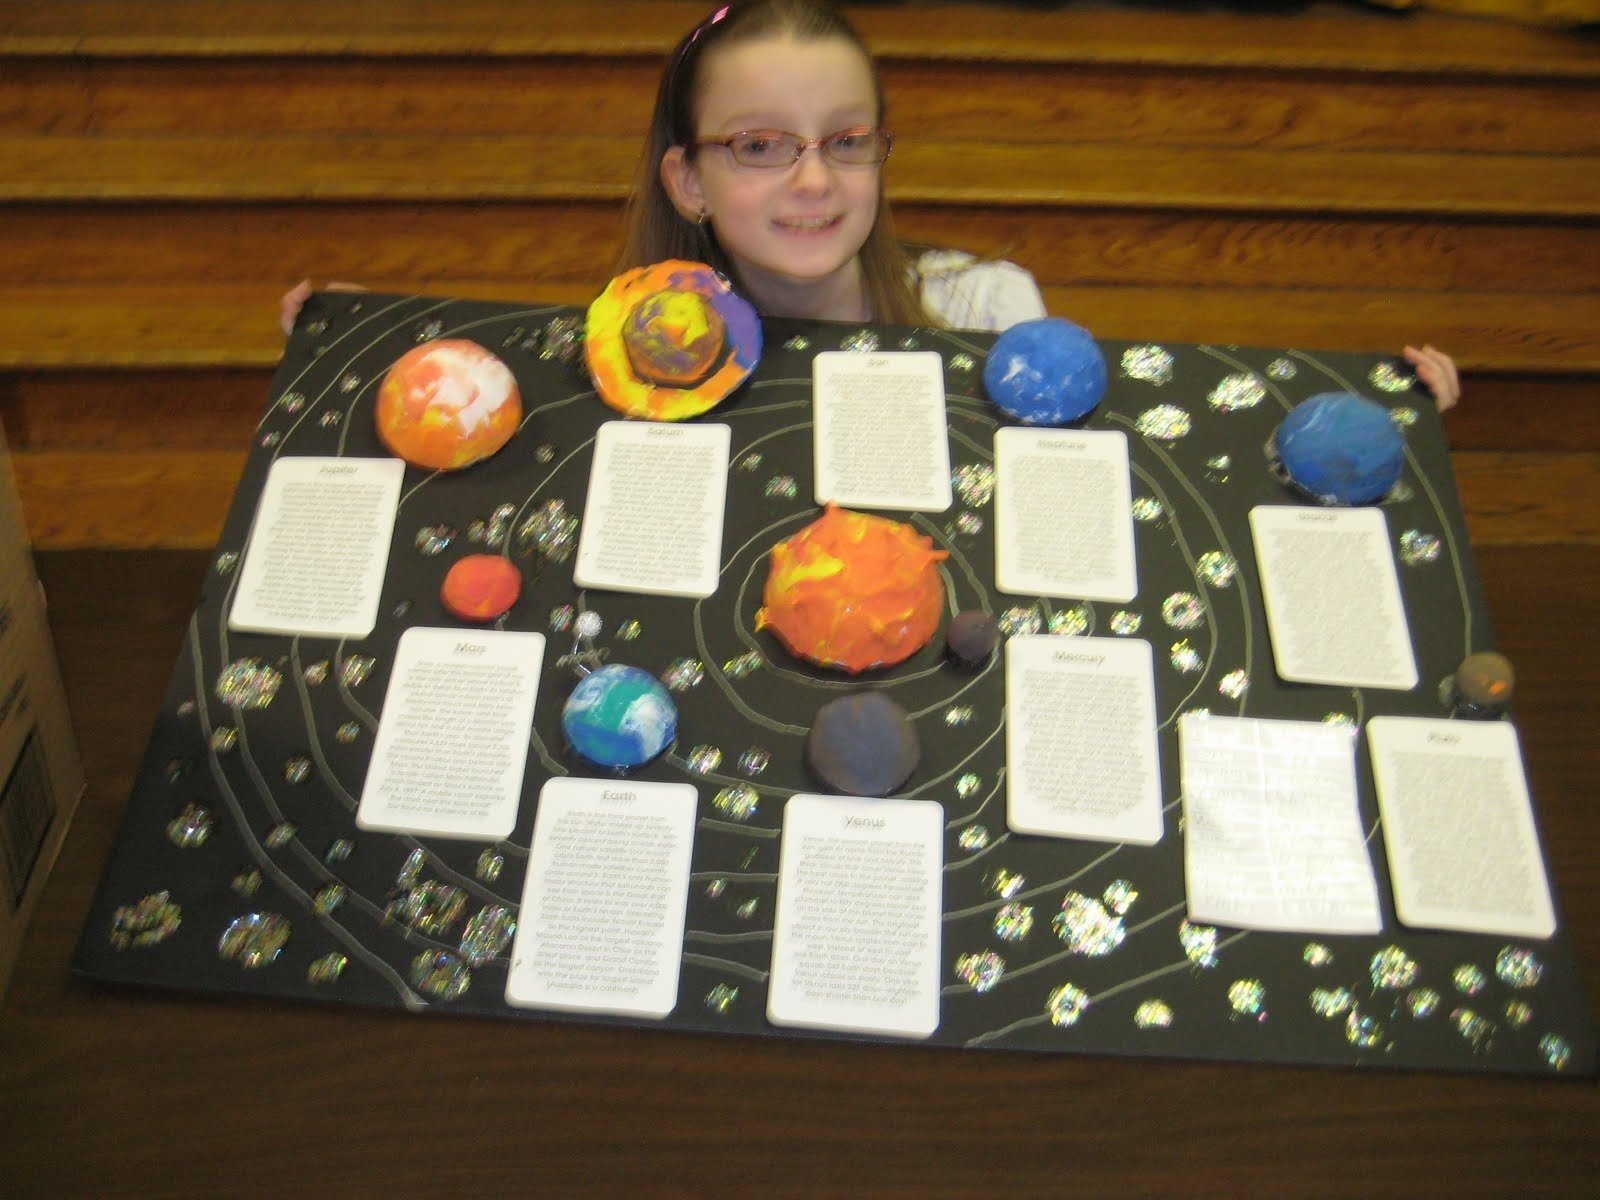 10 Great Science Project Ideas For 3Rd Graders 3rd grade science fair projects google search the boys 1 2020